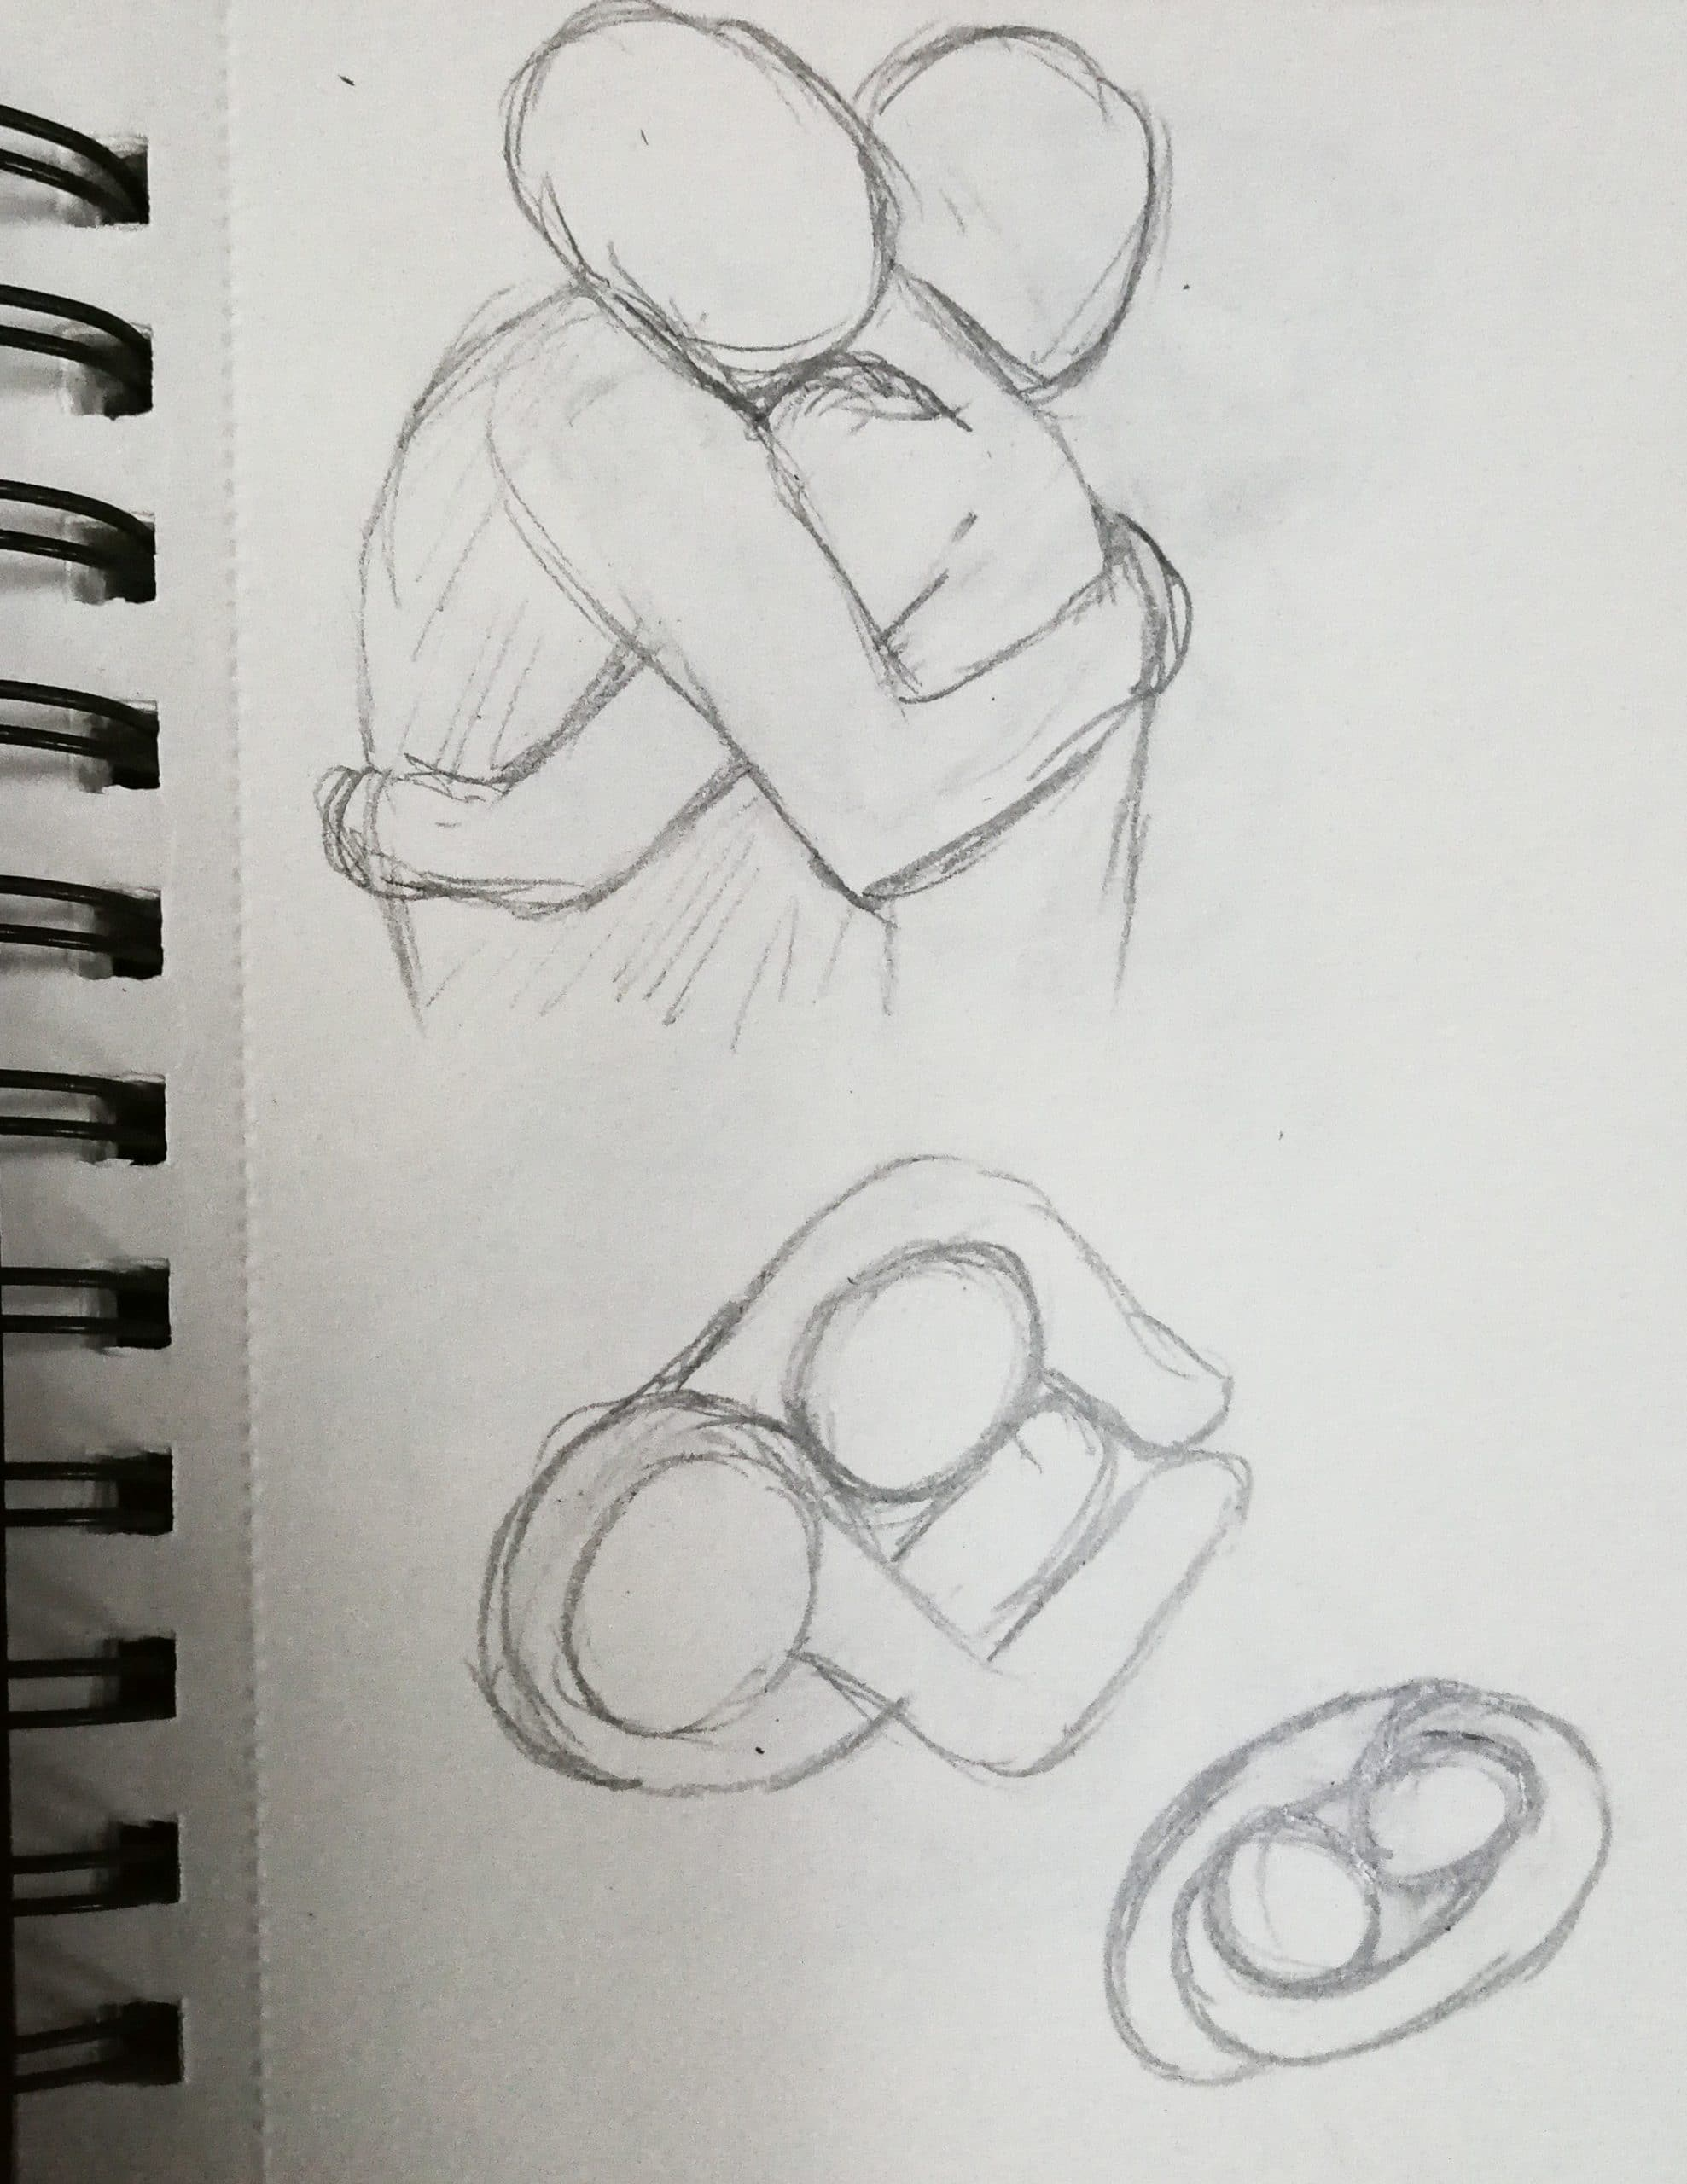 Developing emotional ring designs from a wedding photo